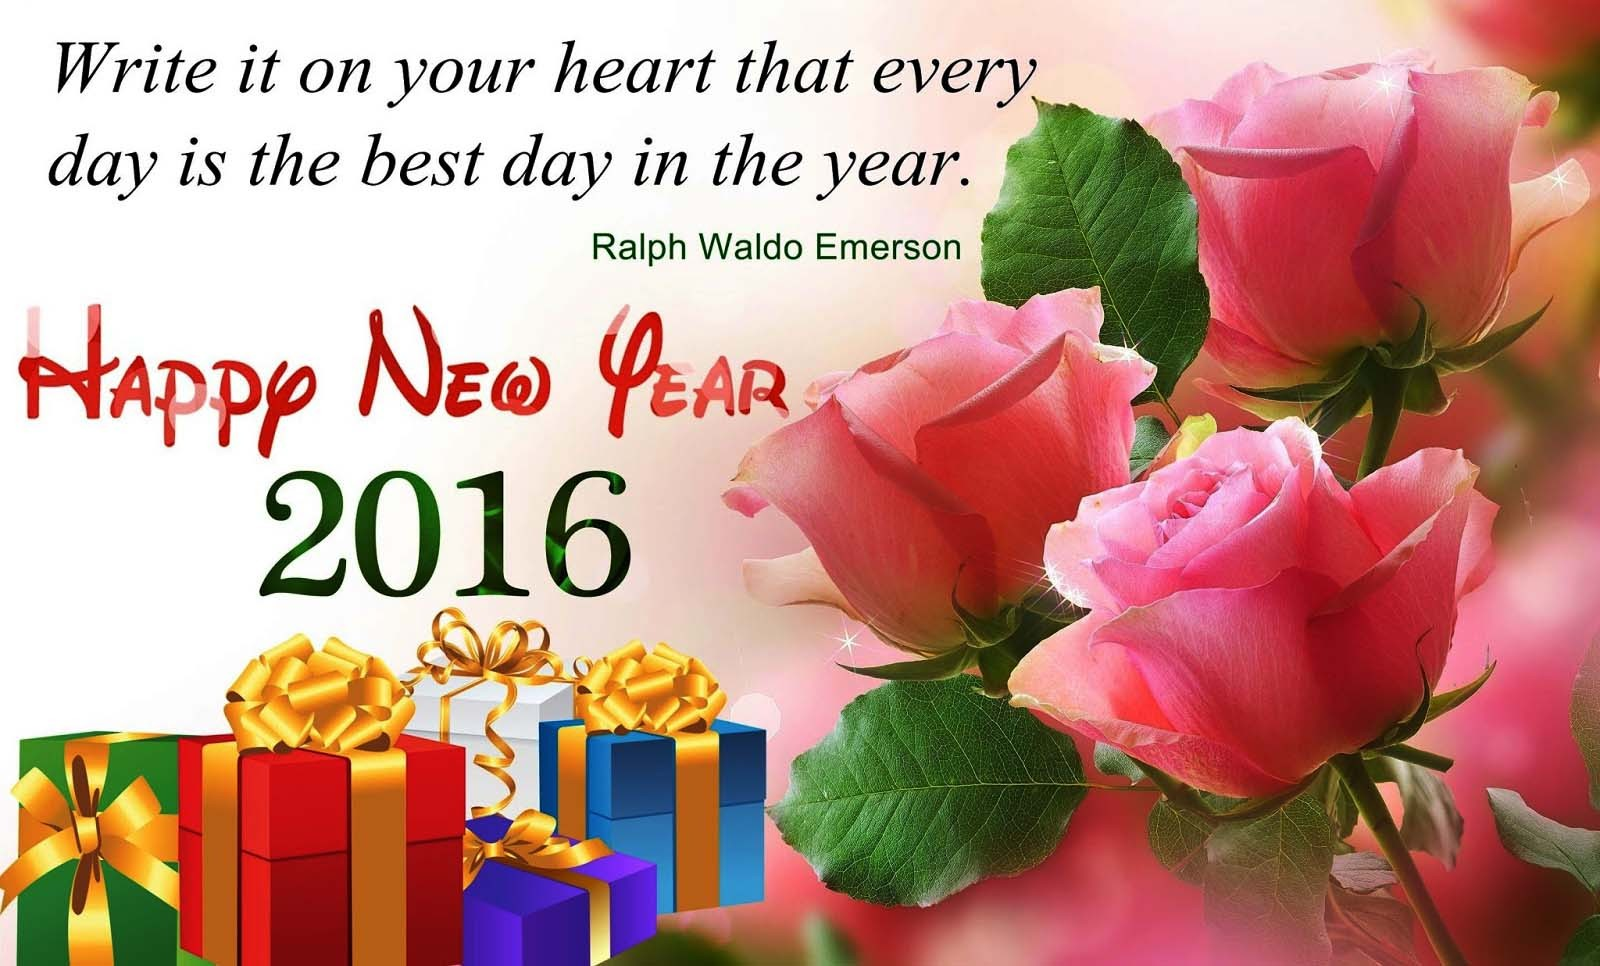 Wallpaper download new year - Download New Year Wallpaper Free